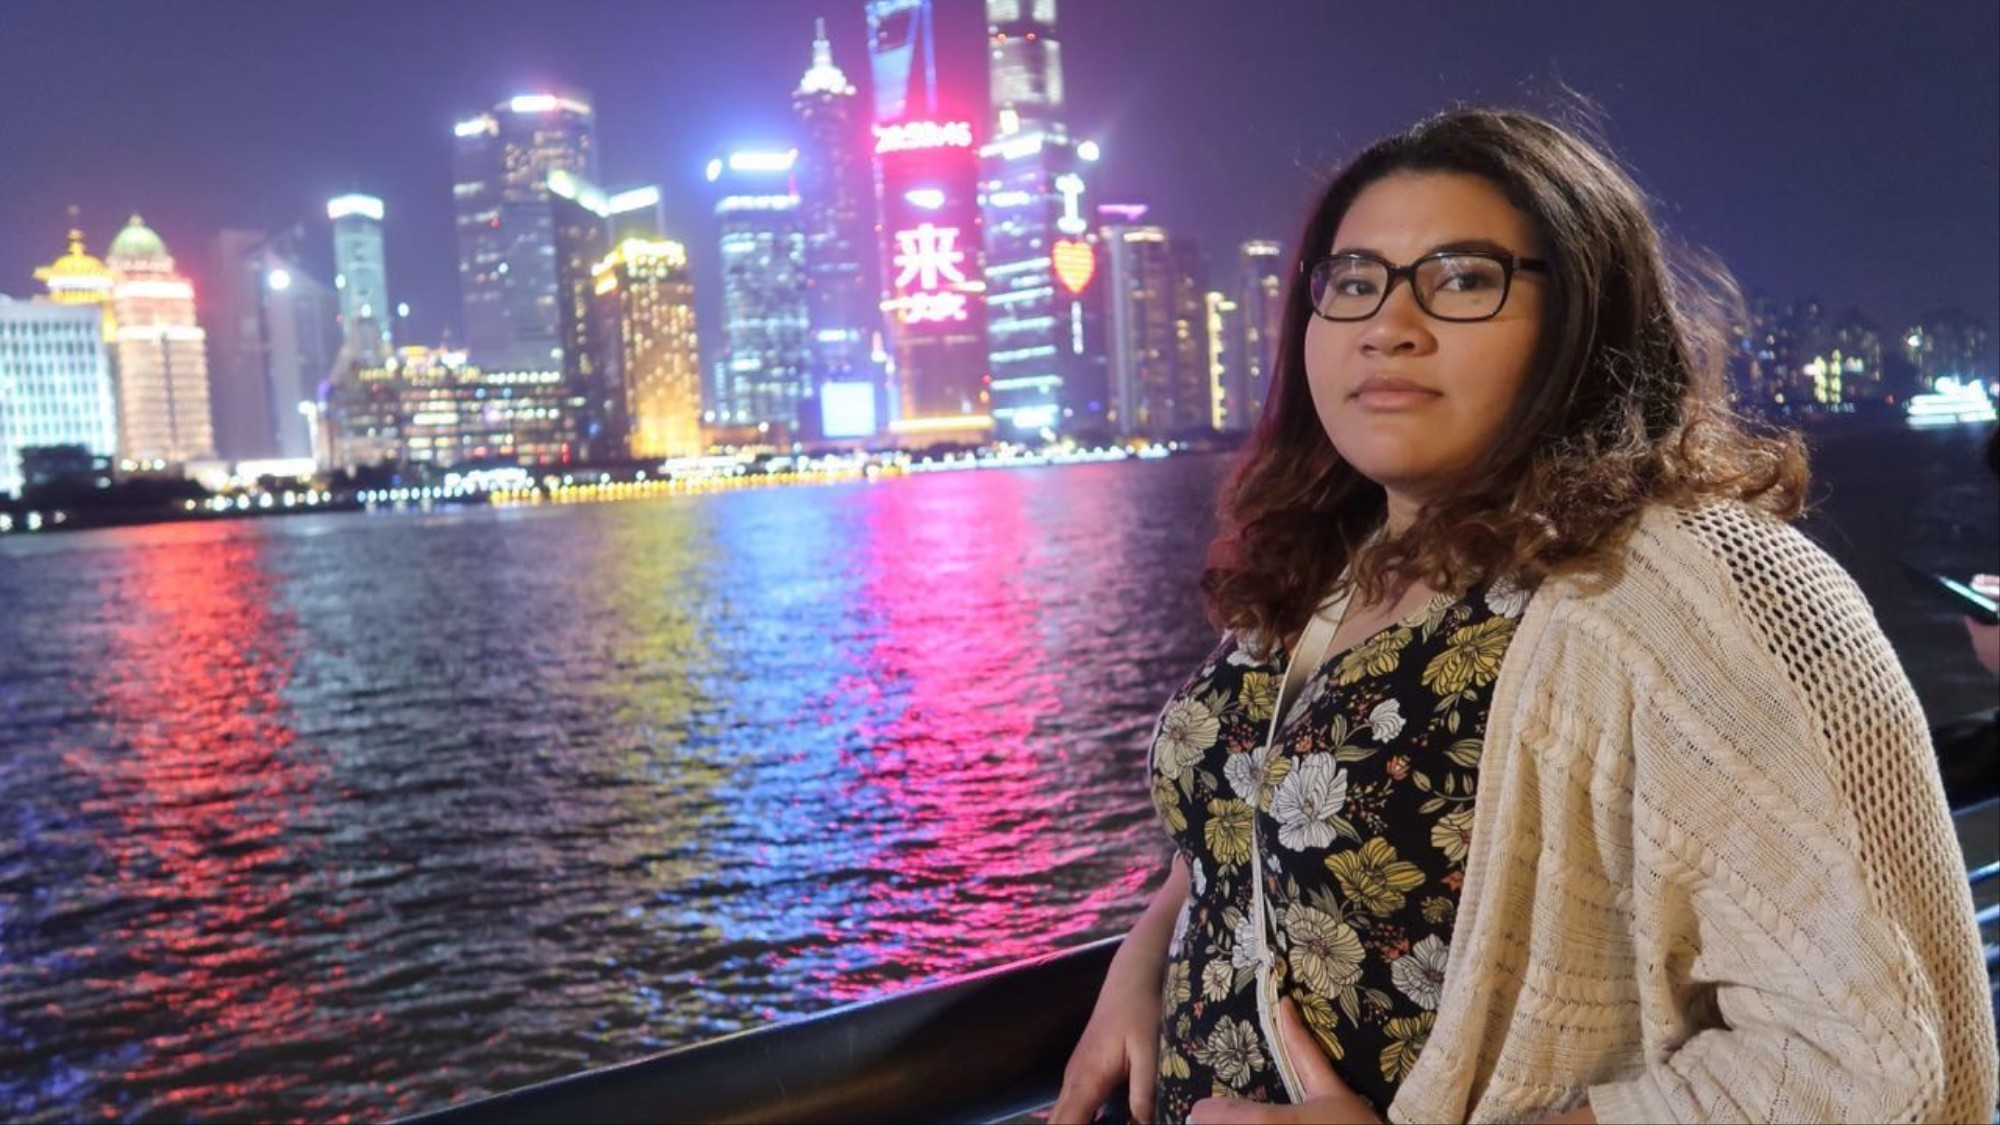 4f9b7f05820d4 People in China Thought It Was Okay to Call Me Fat to My Face - VICE